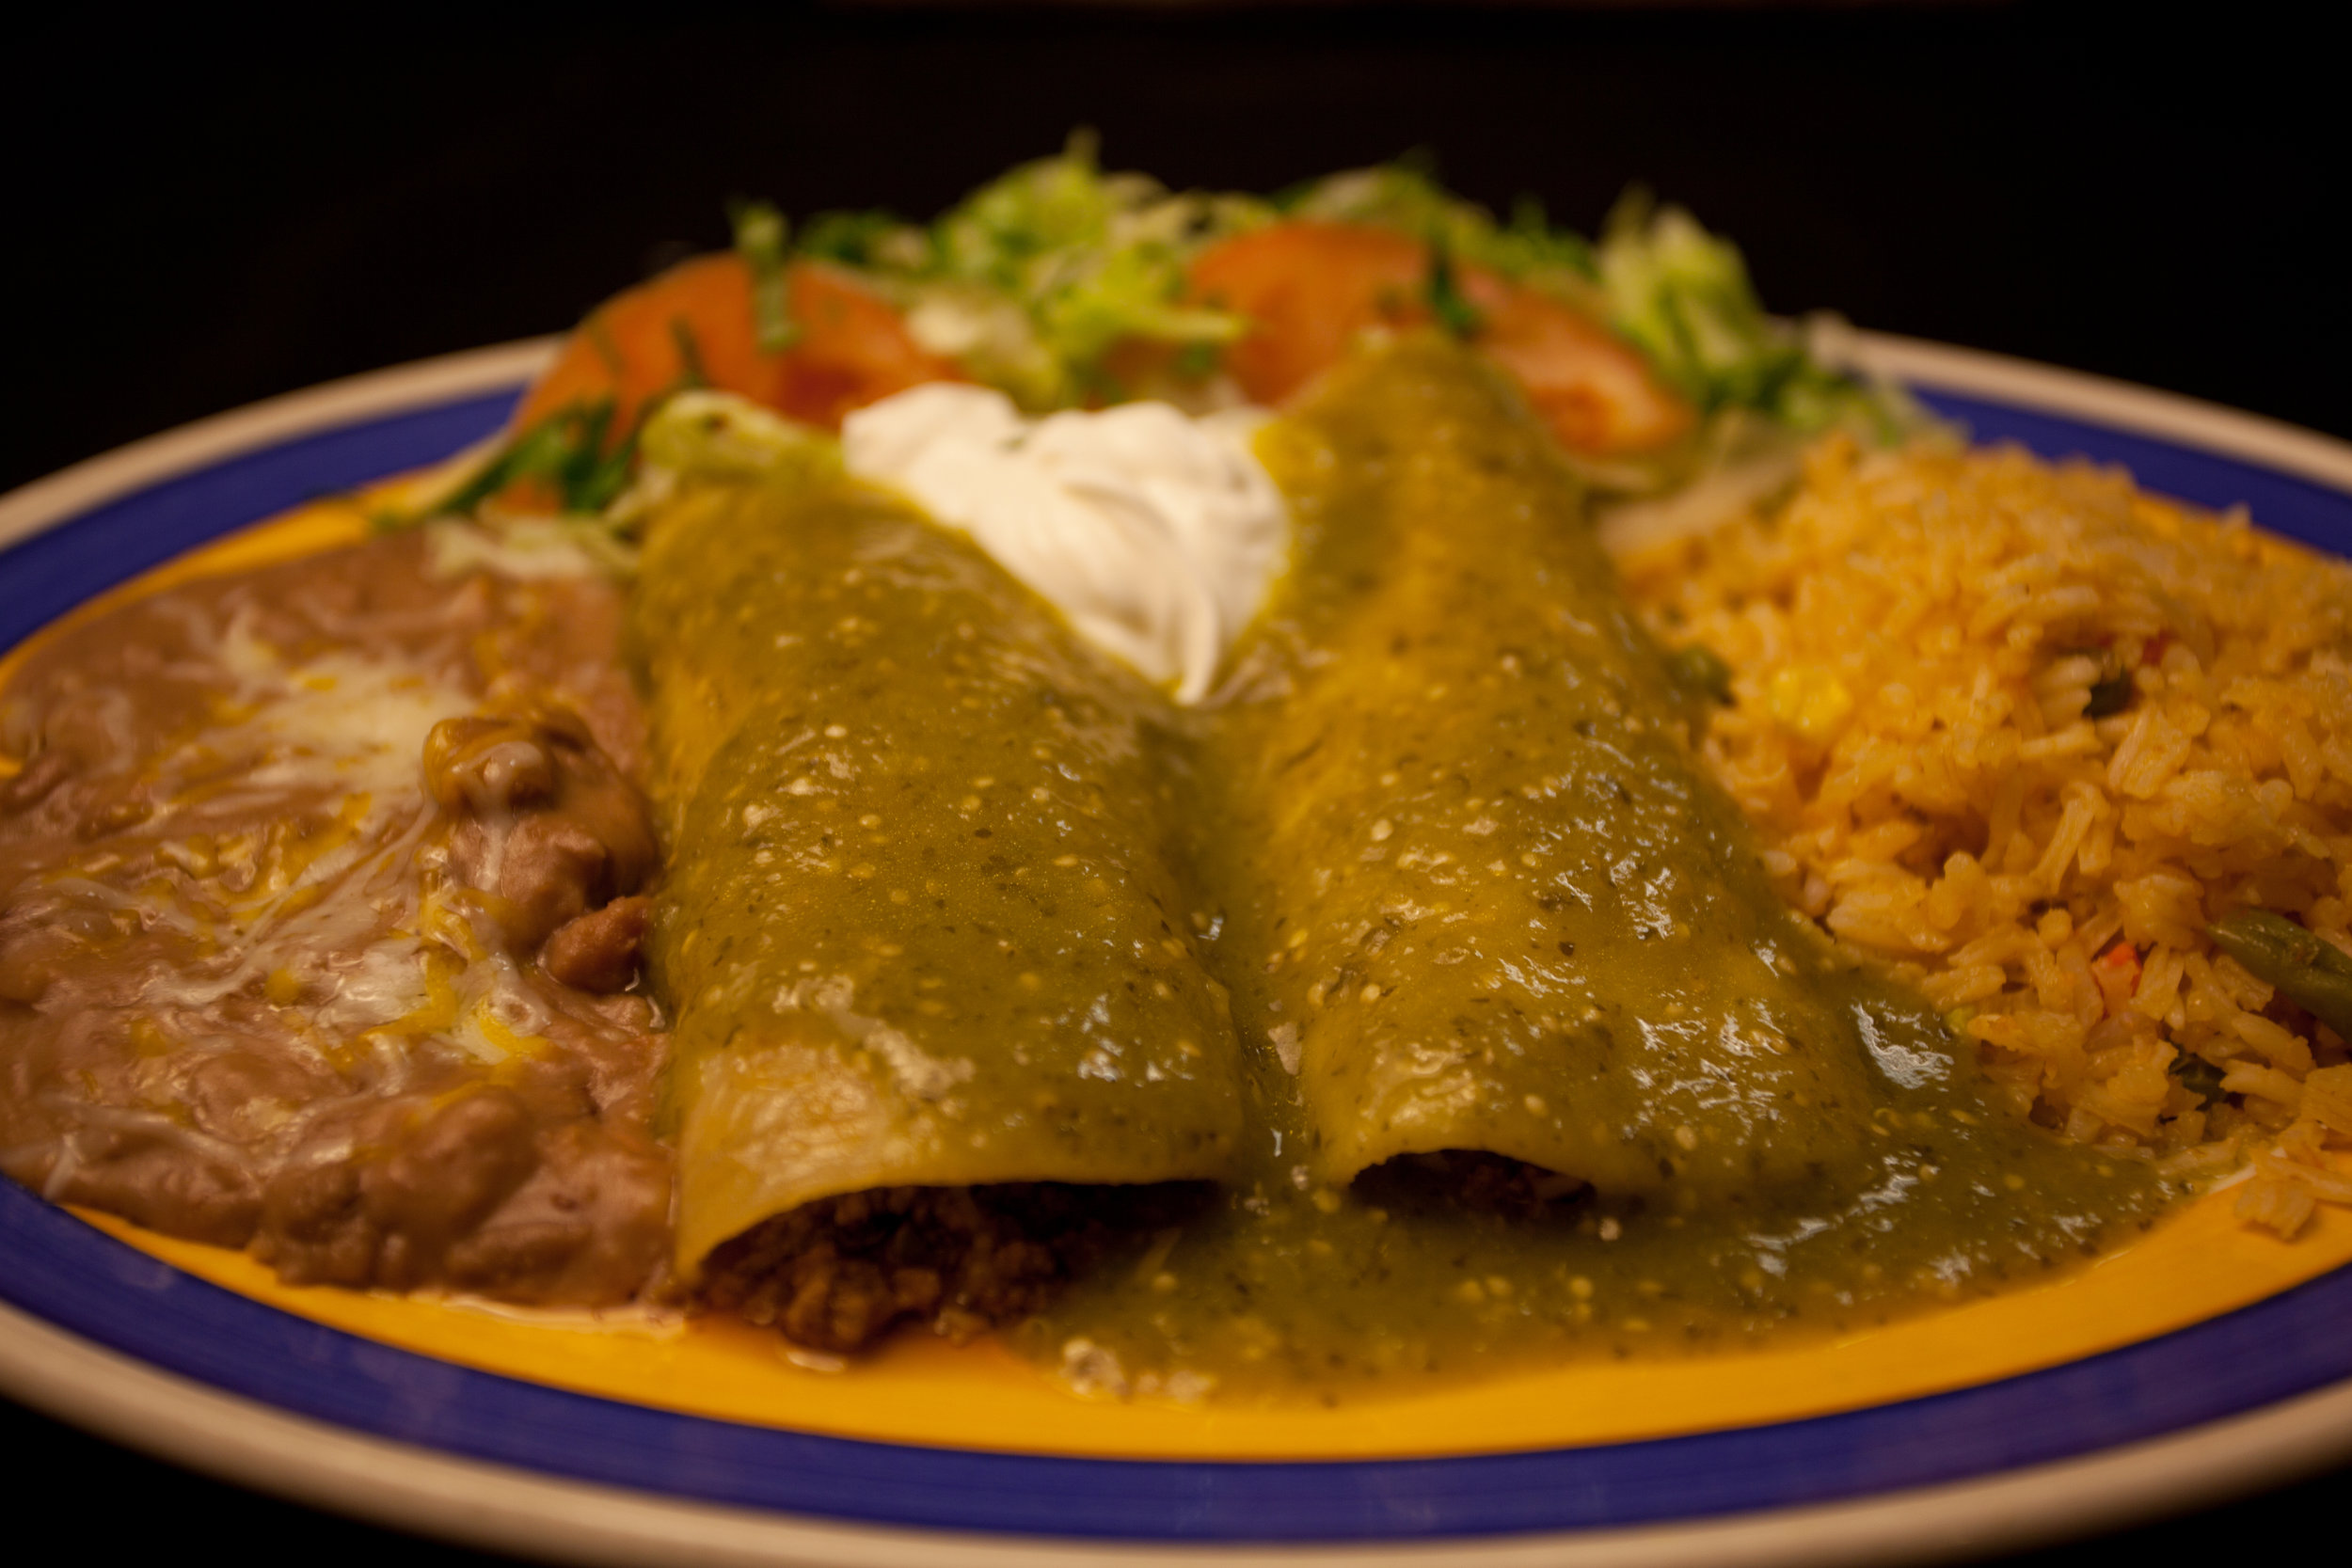 Enchilada Verde - The Verde / Green salsa Enchilada Lunch or Dinner is on special.